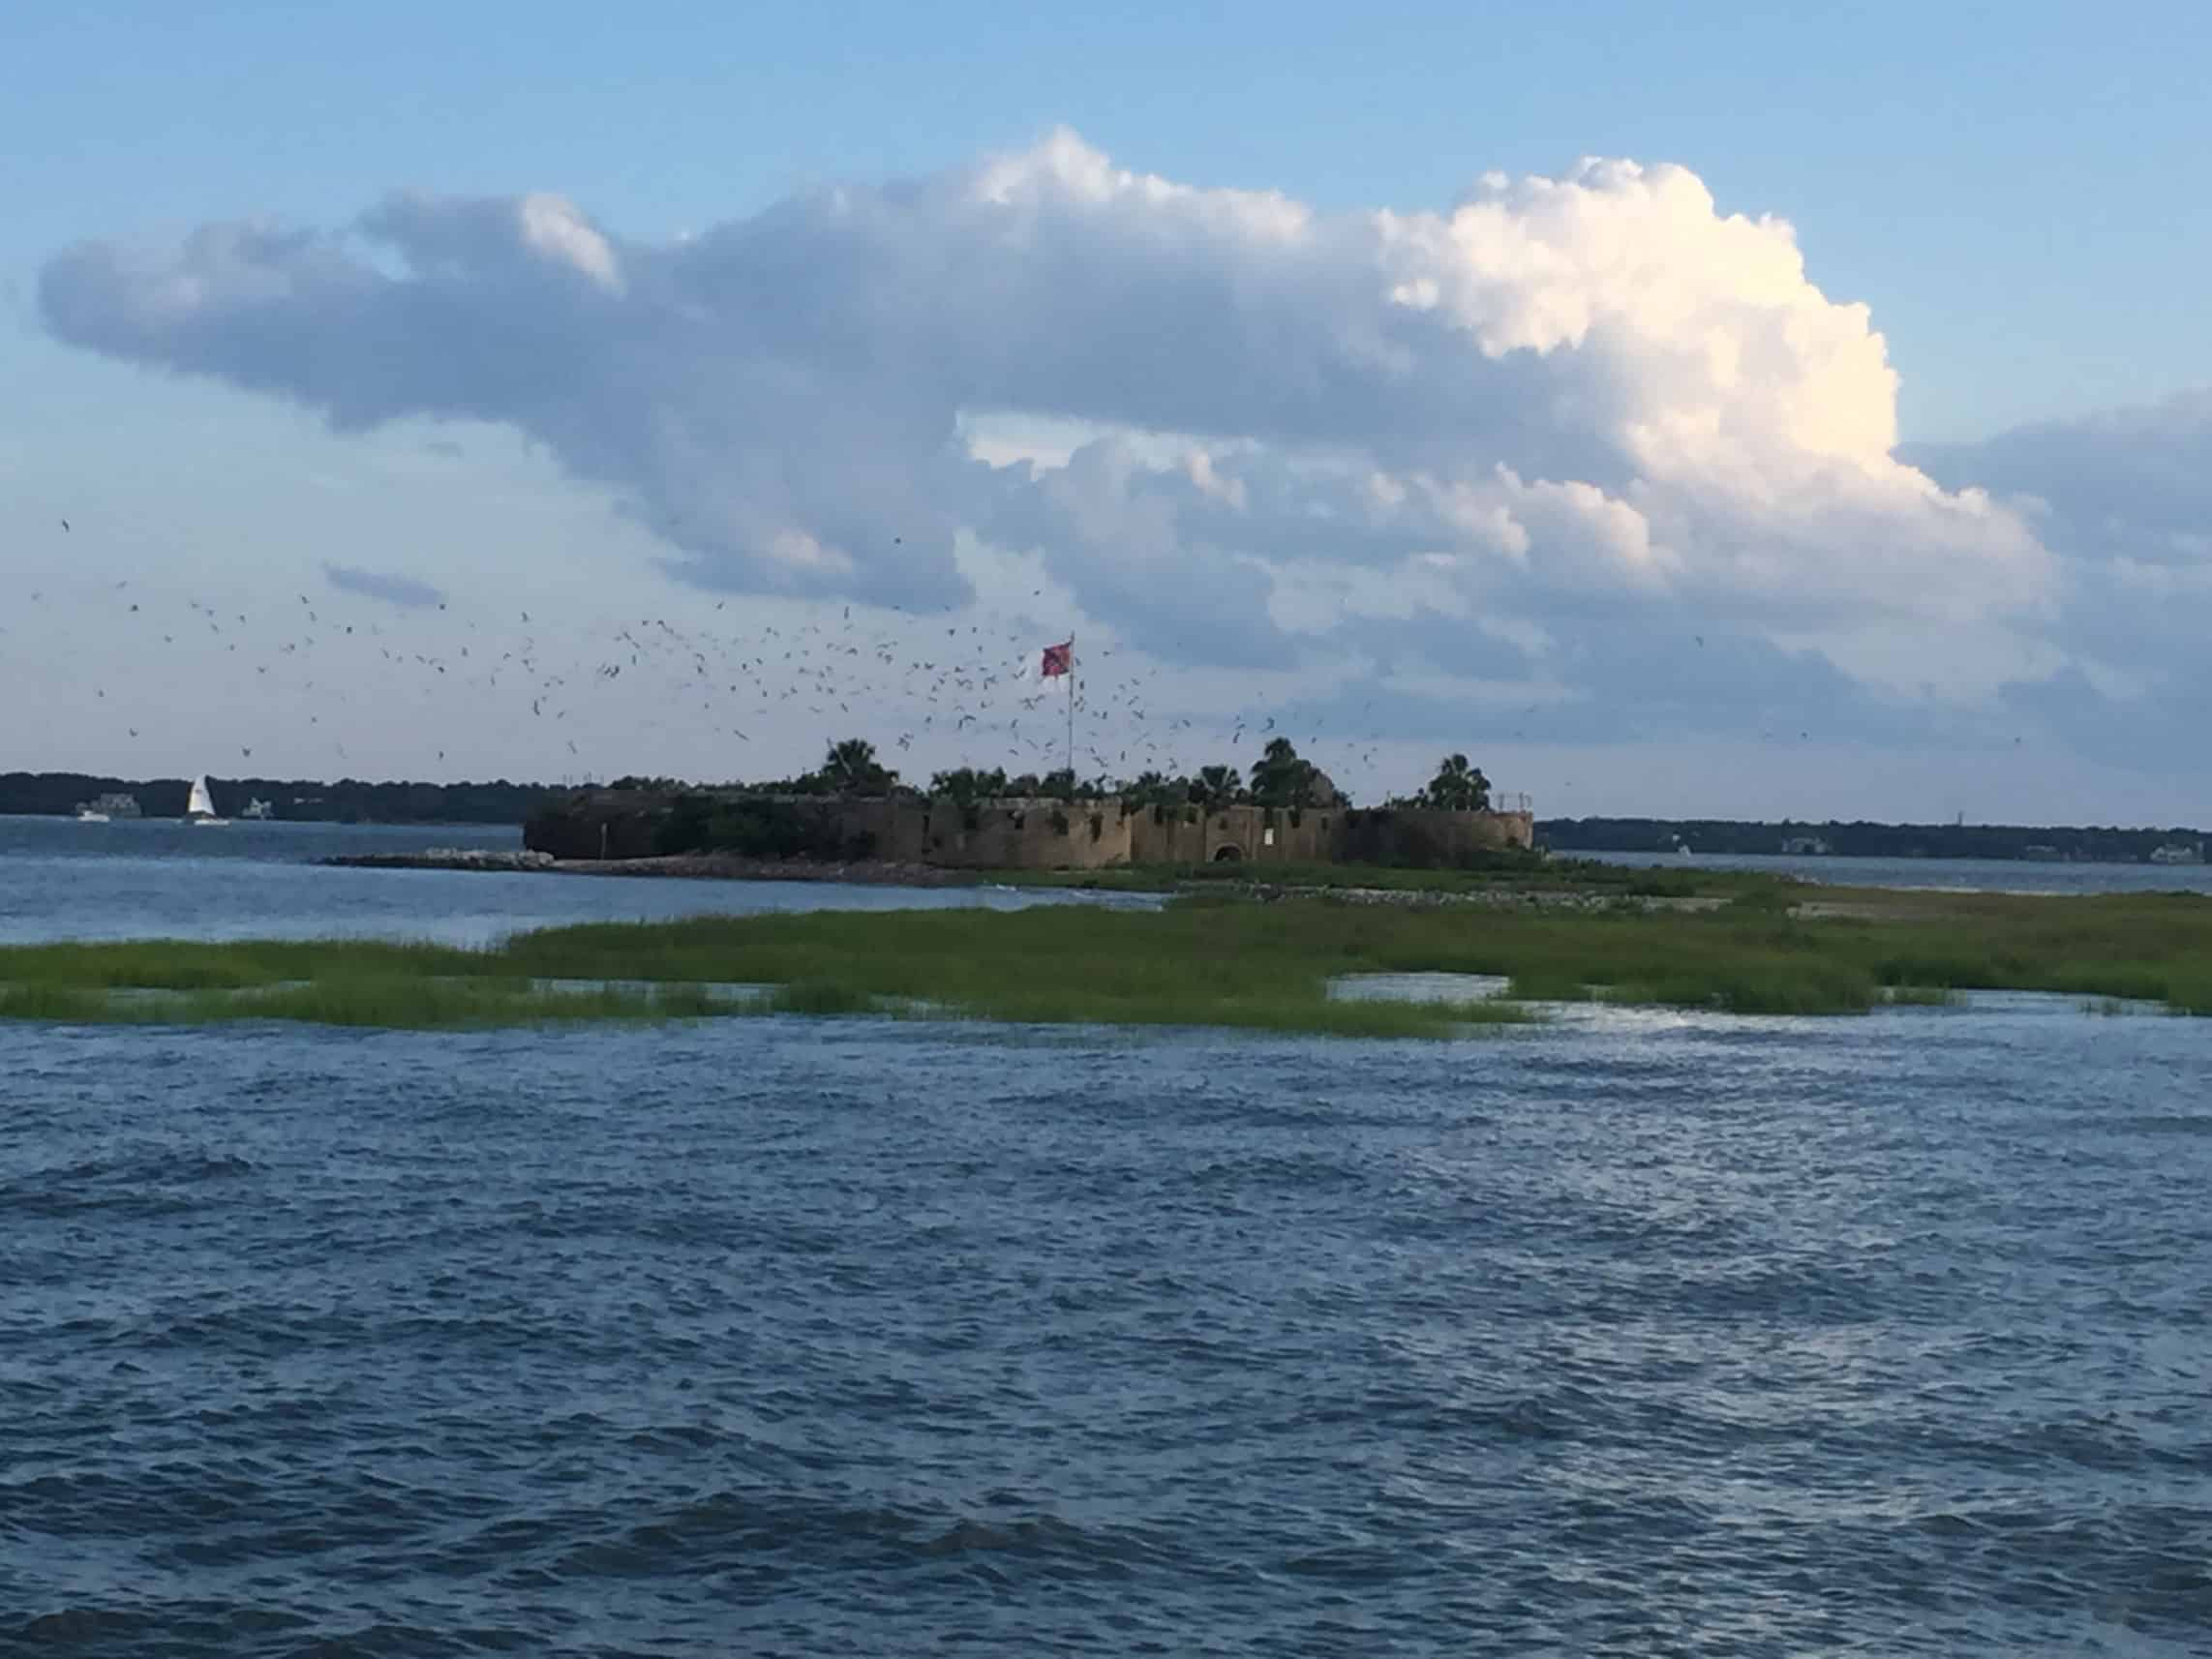 Castle Pinkney in distance. Best time of day to see dolphins in South Carolina